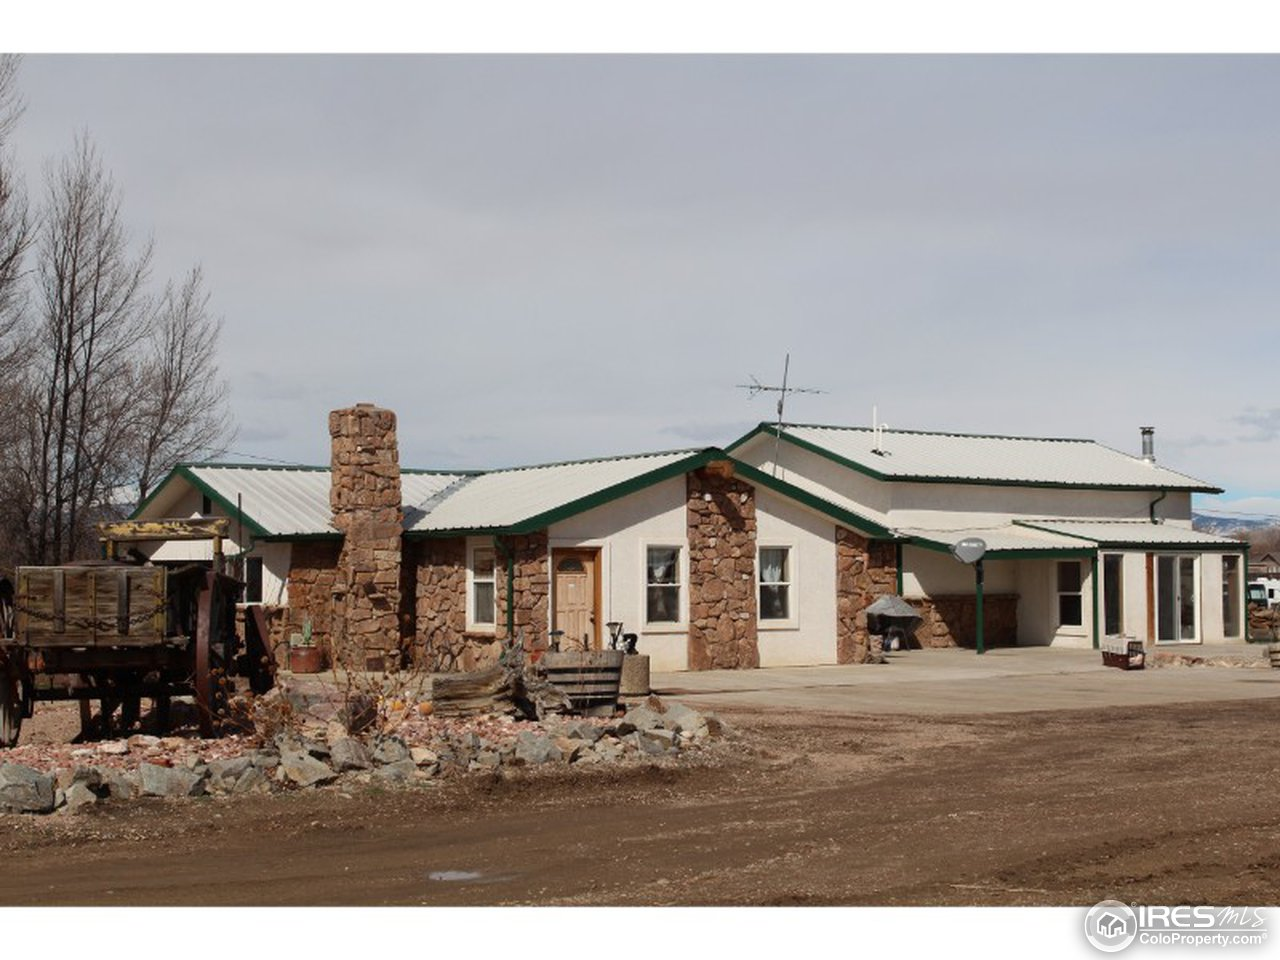 441 W County Road 16 Loveland Home Listings - Team Cook Real Estate